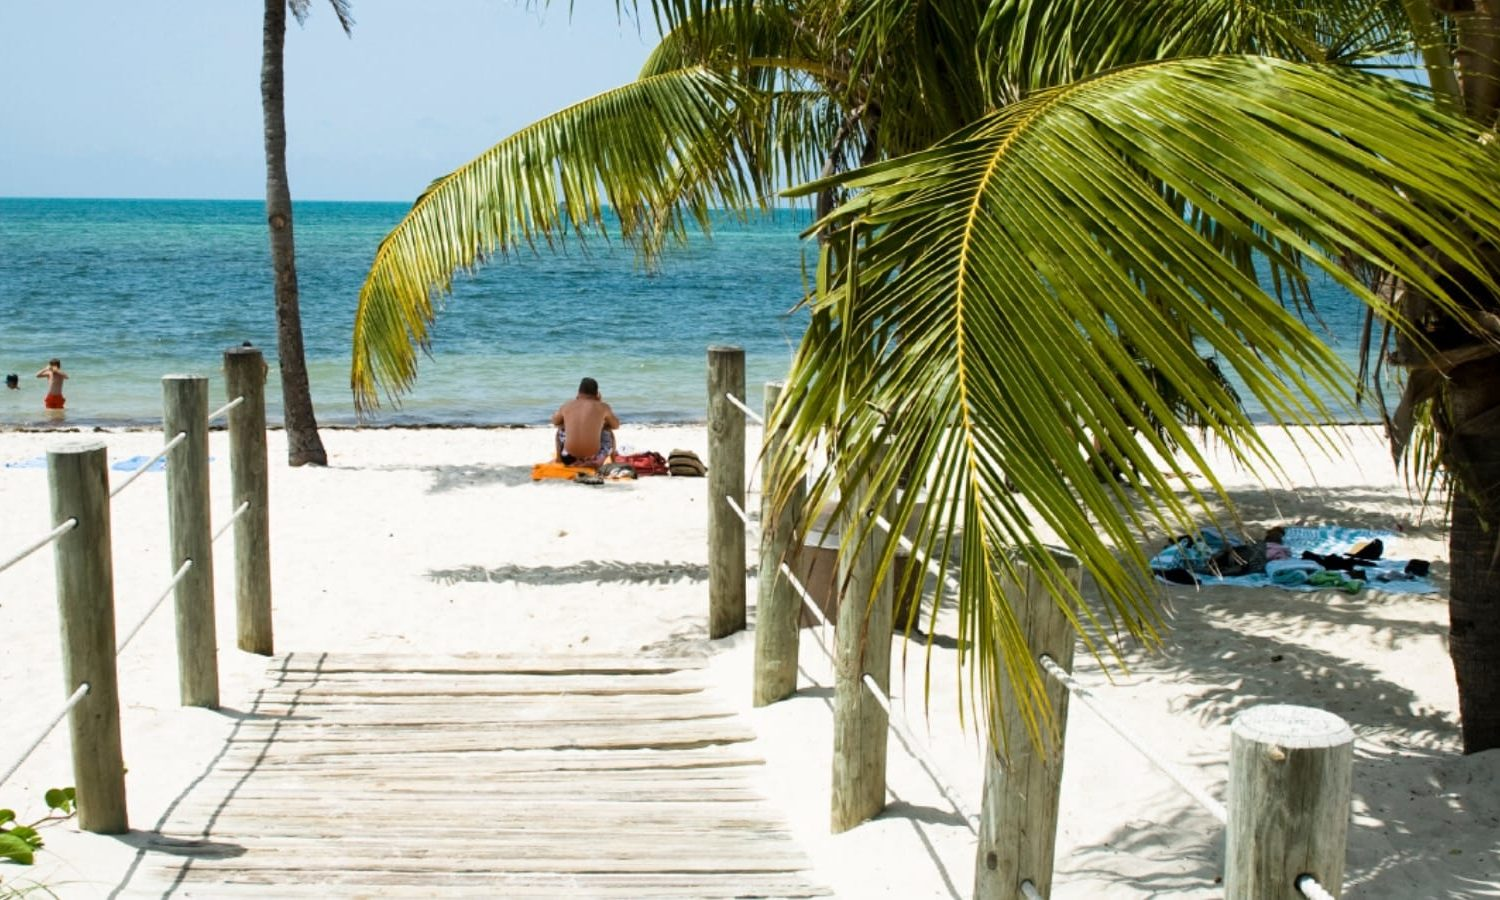 Miami to Key West with GyPSy Guide Tour